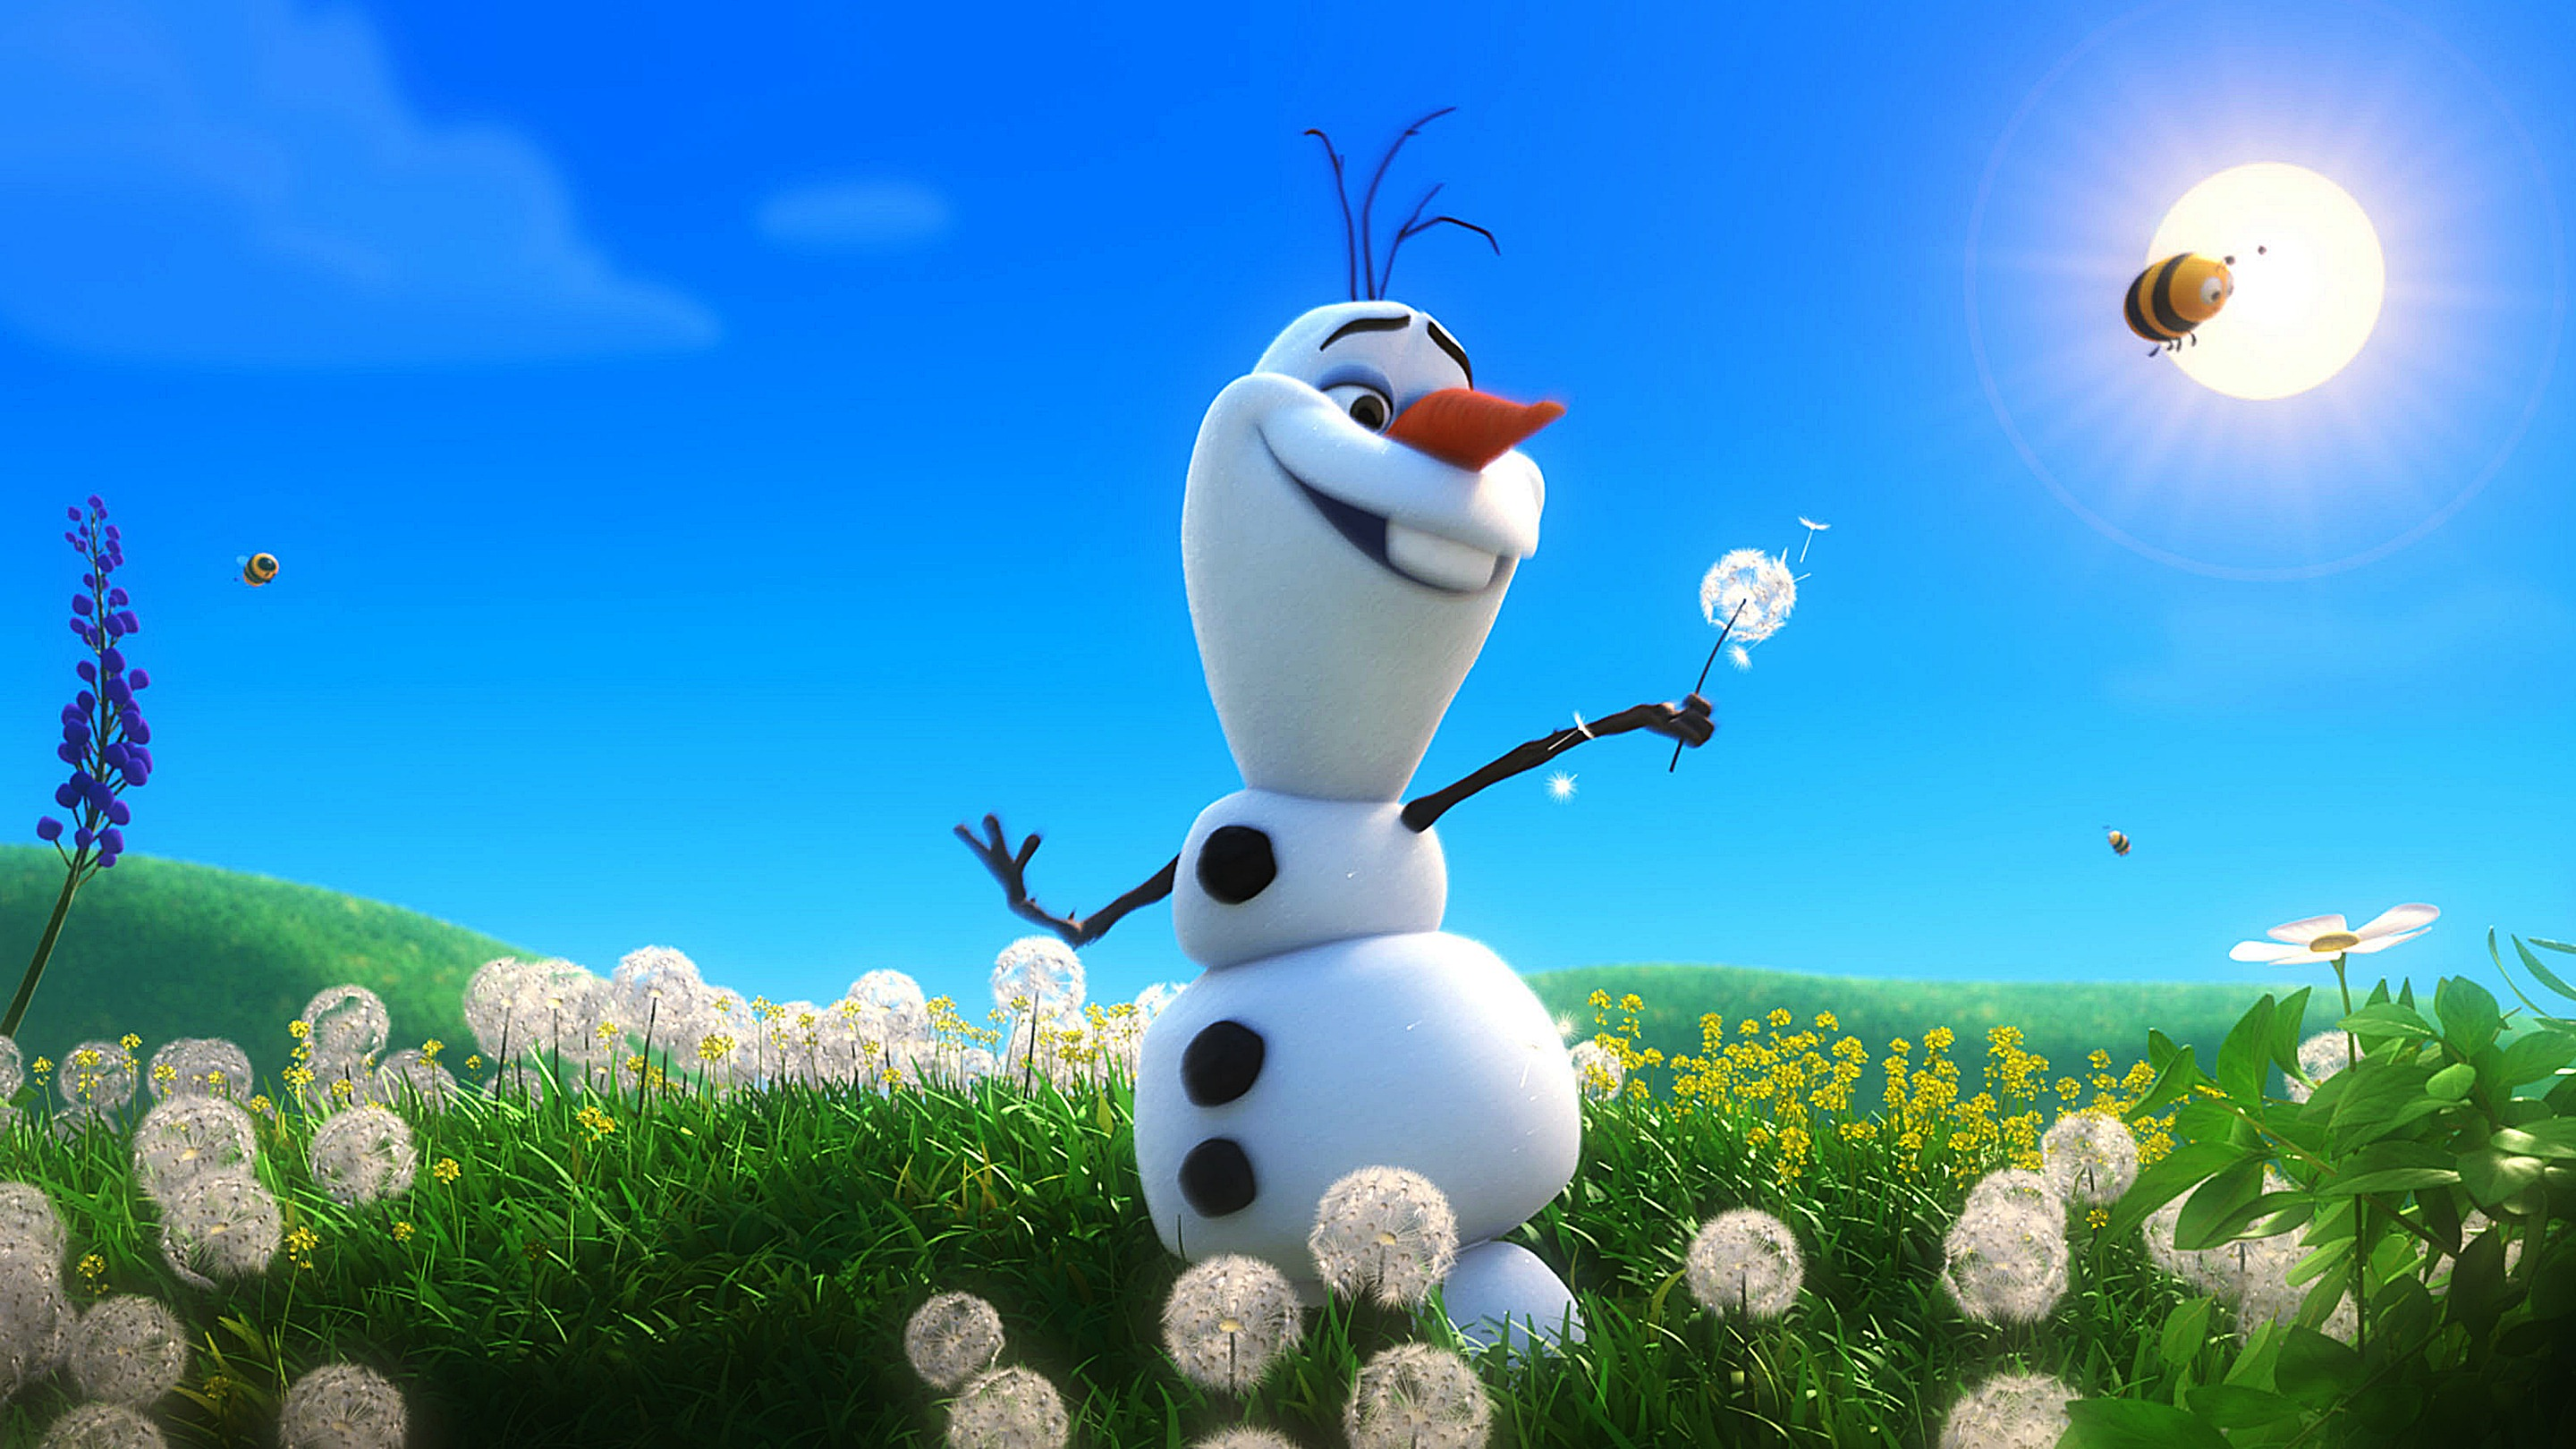 Funny Olaf Snowman in Summer HD Wallpaper Download Cartoon Wallpaper 2880x1620